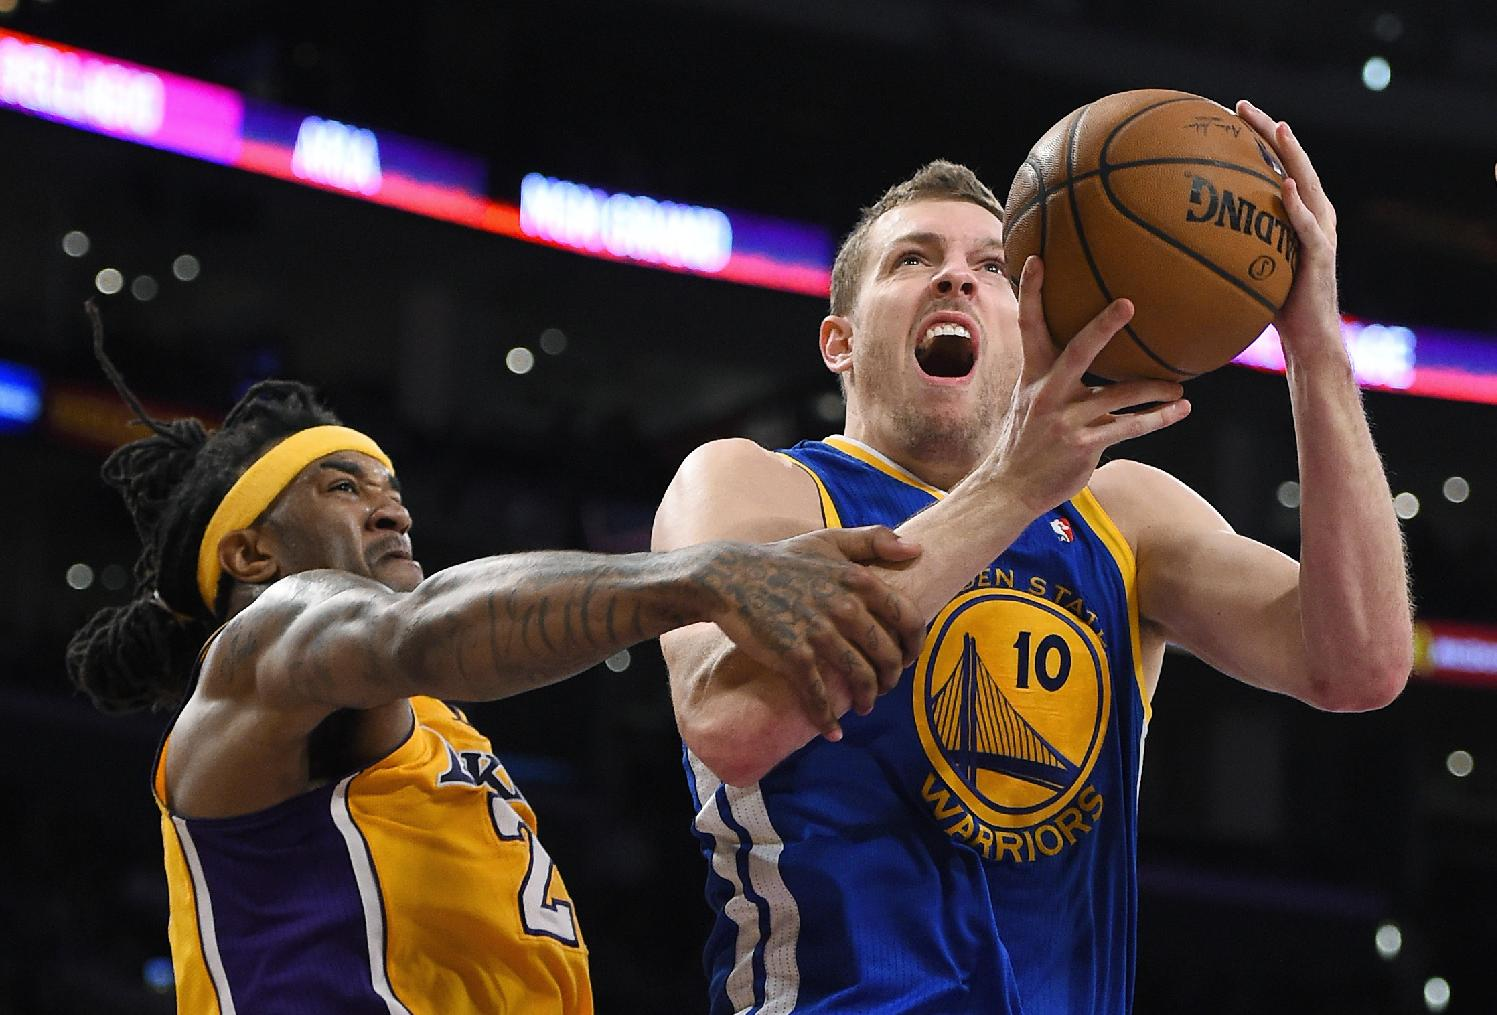 Golden State Warriors forward David Lee shoots as Los Angeles Lakers forward Jordan Hill defends during the second half of an NBA basketball game, Friday, April 11, 2014, in Los Angeles. The Warriors won 112-95